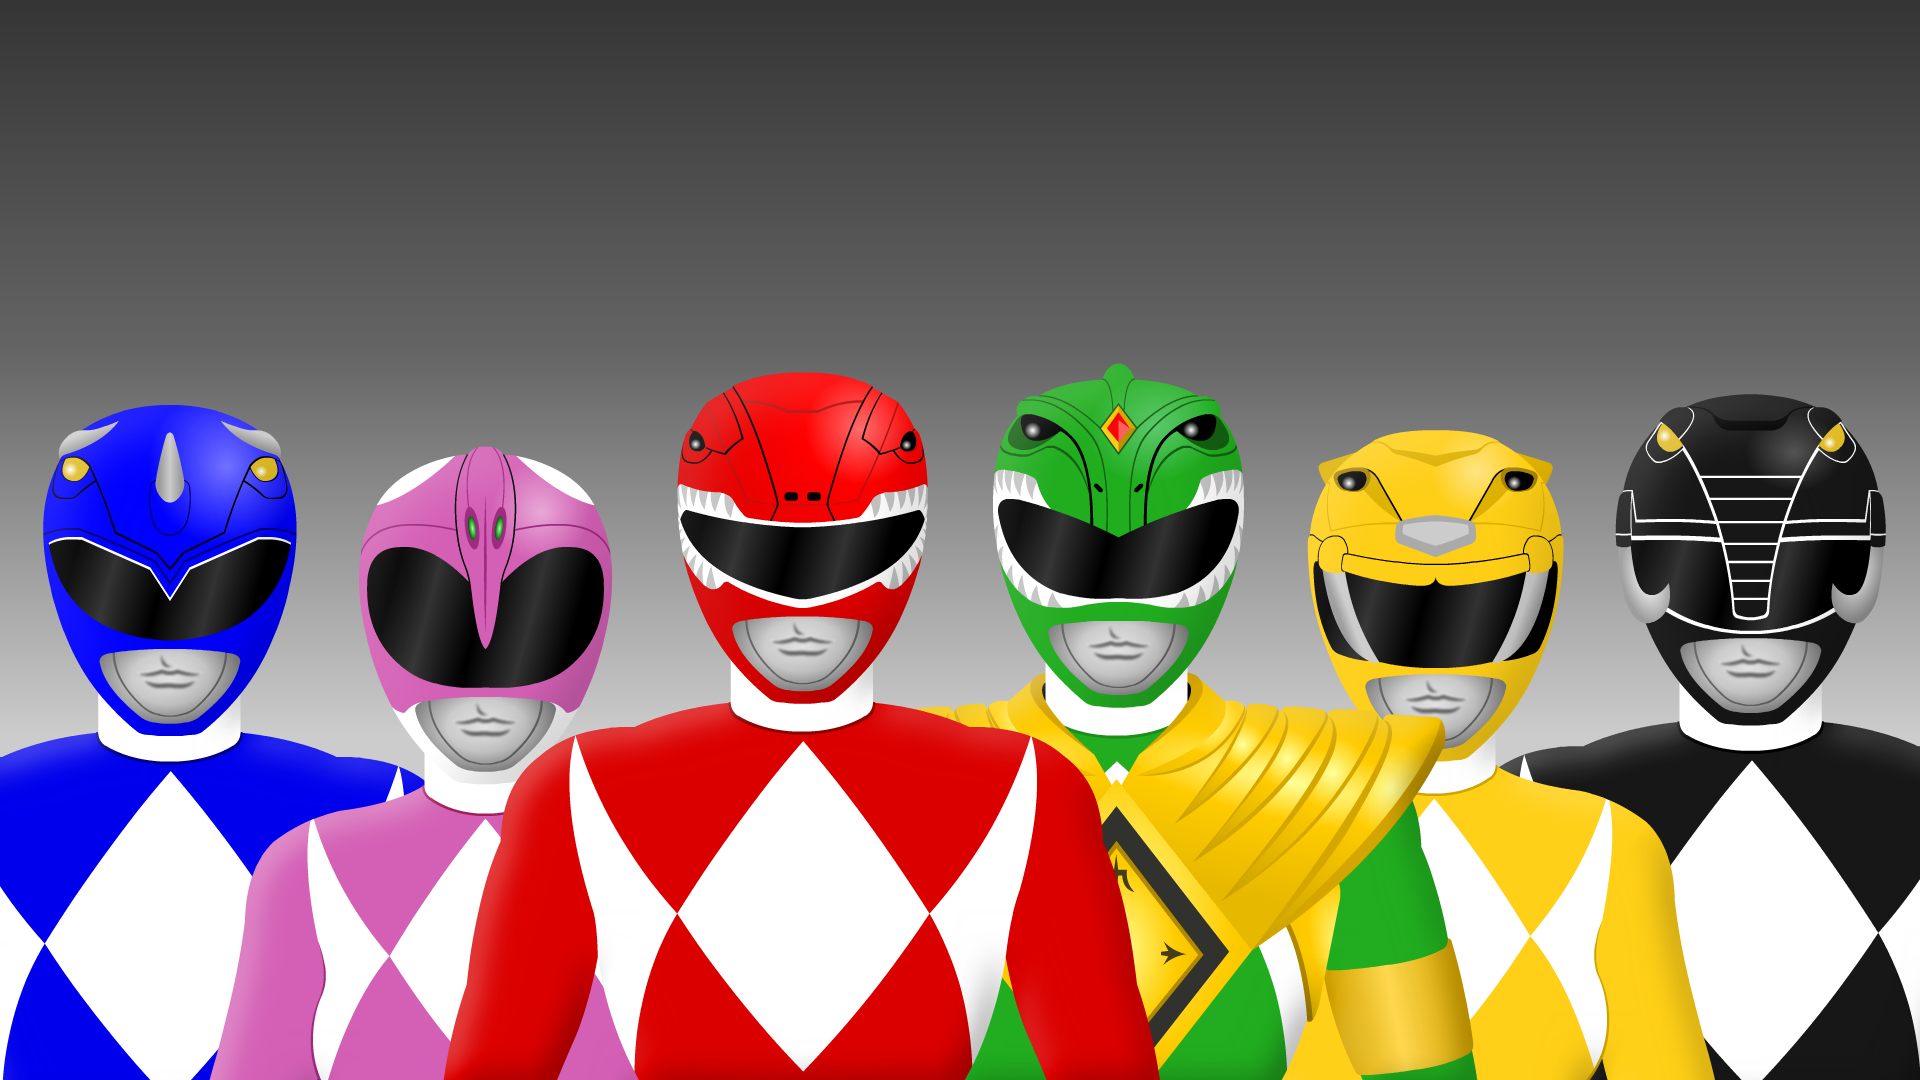 original mighty morphin power rangersyurtigo on deviantart